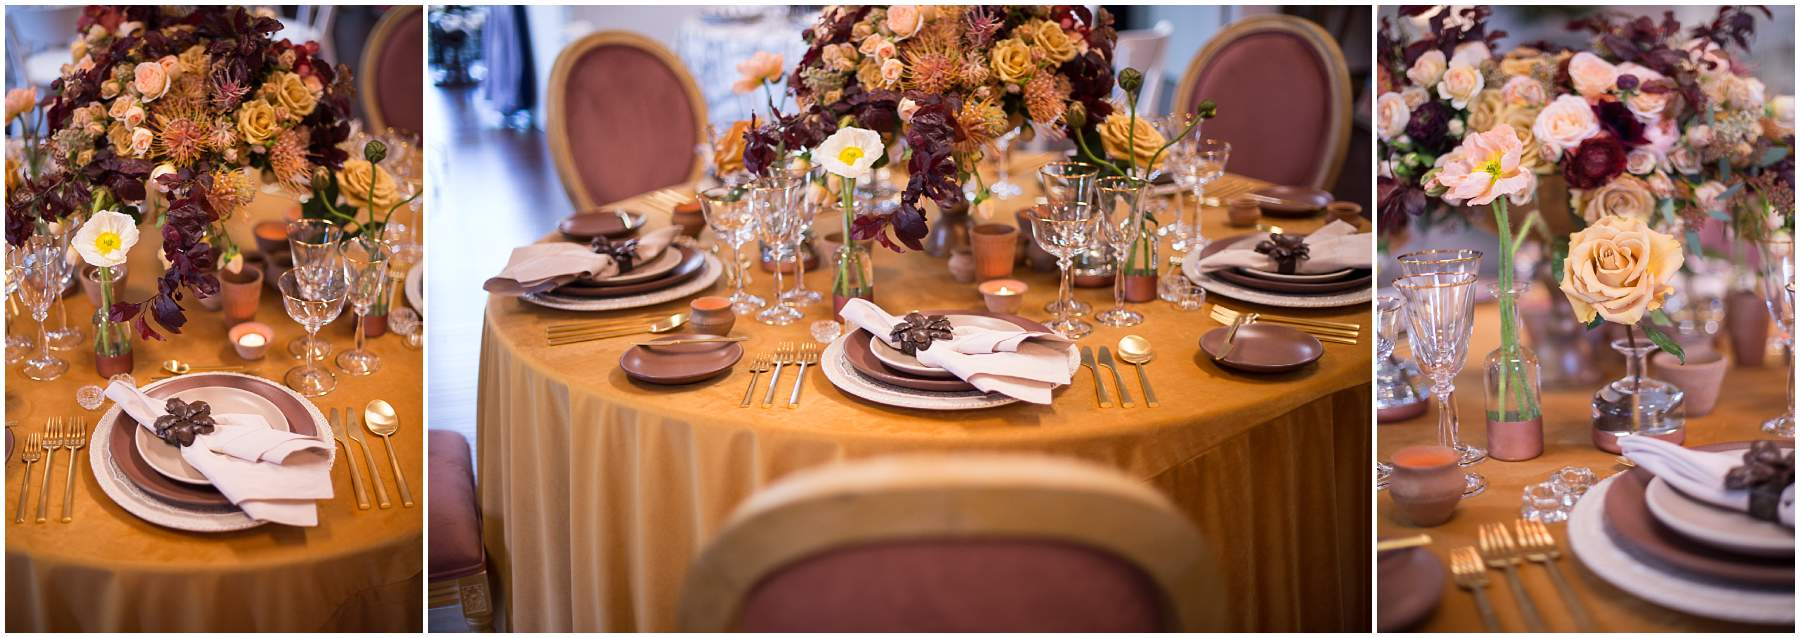 wedding_planner_fredericksburg_0065